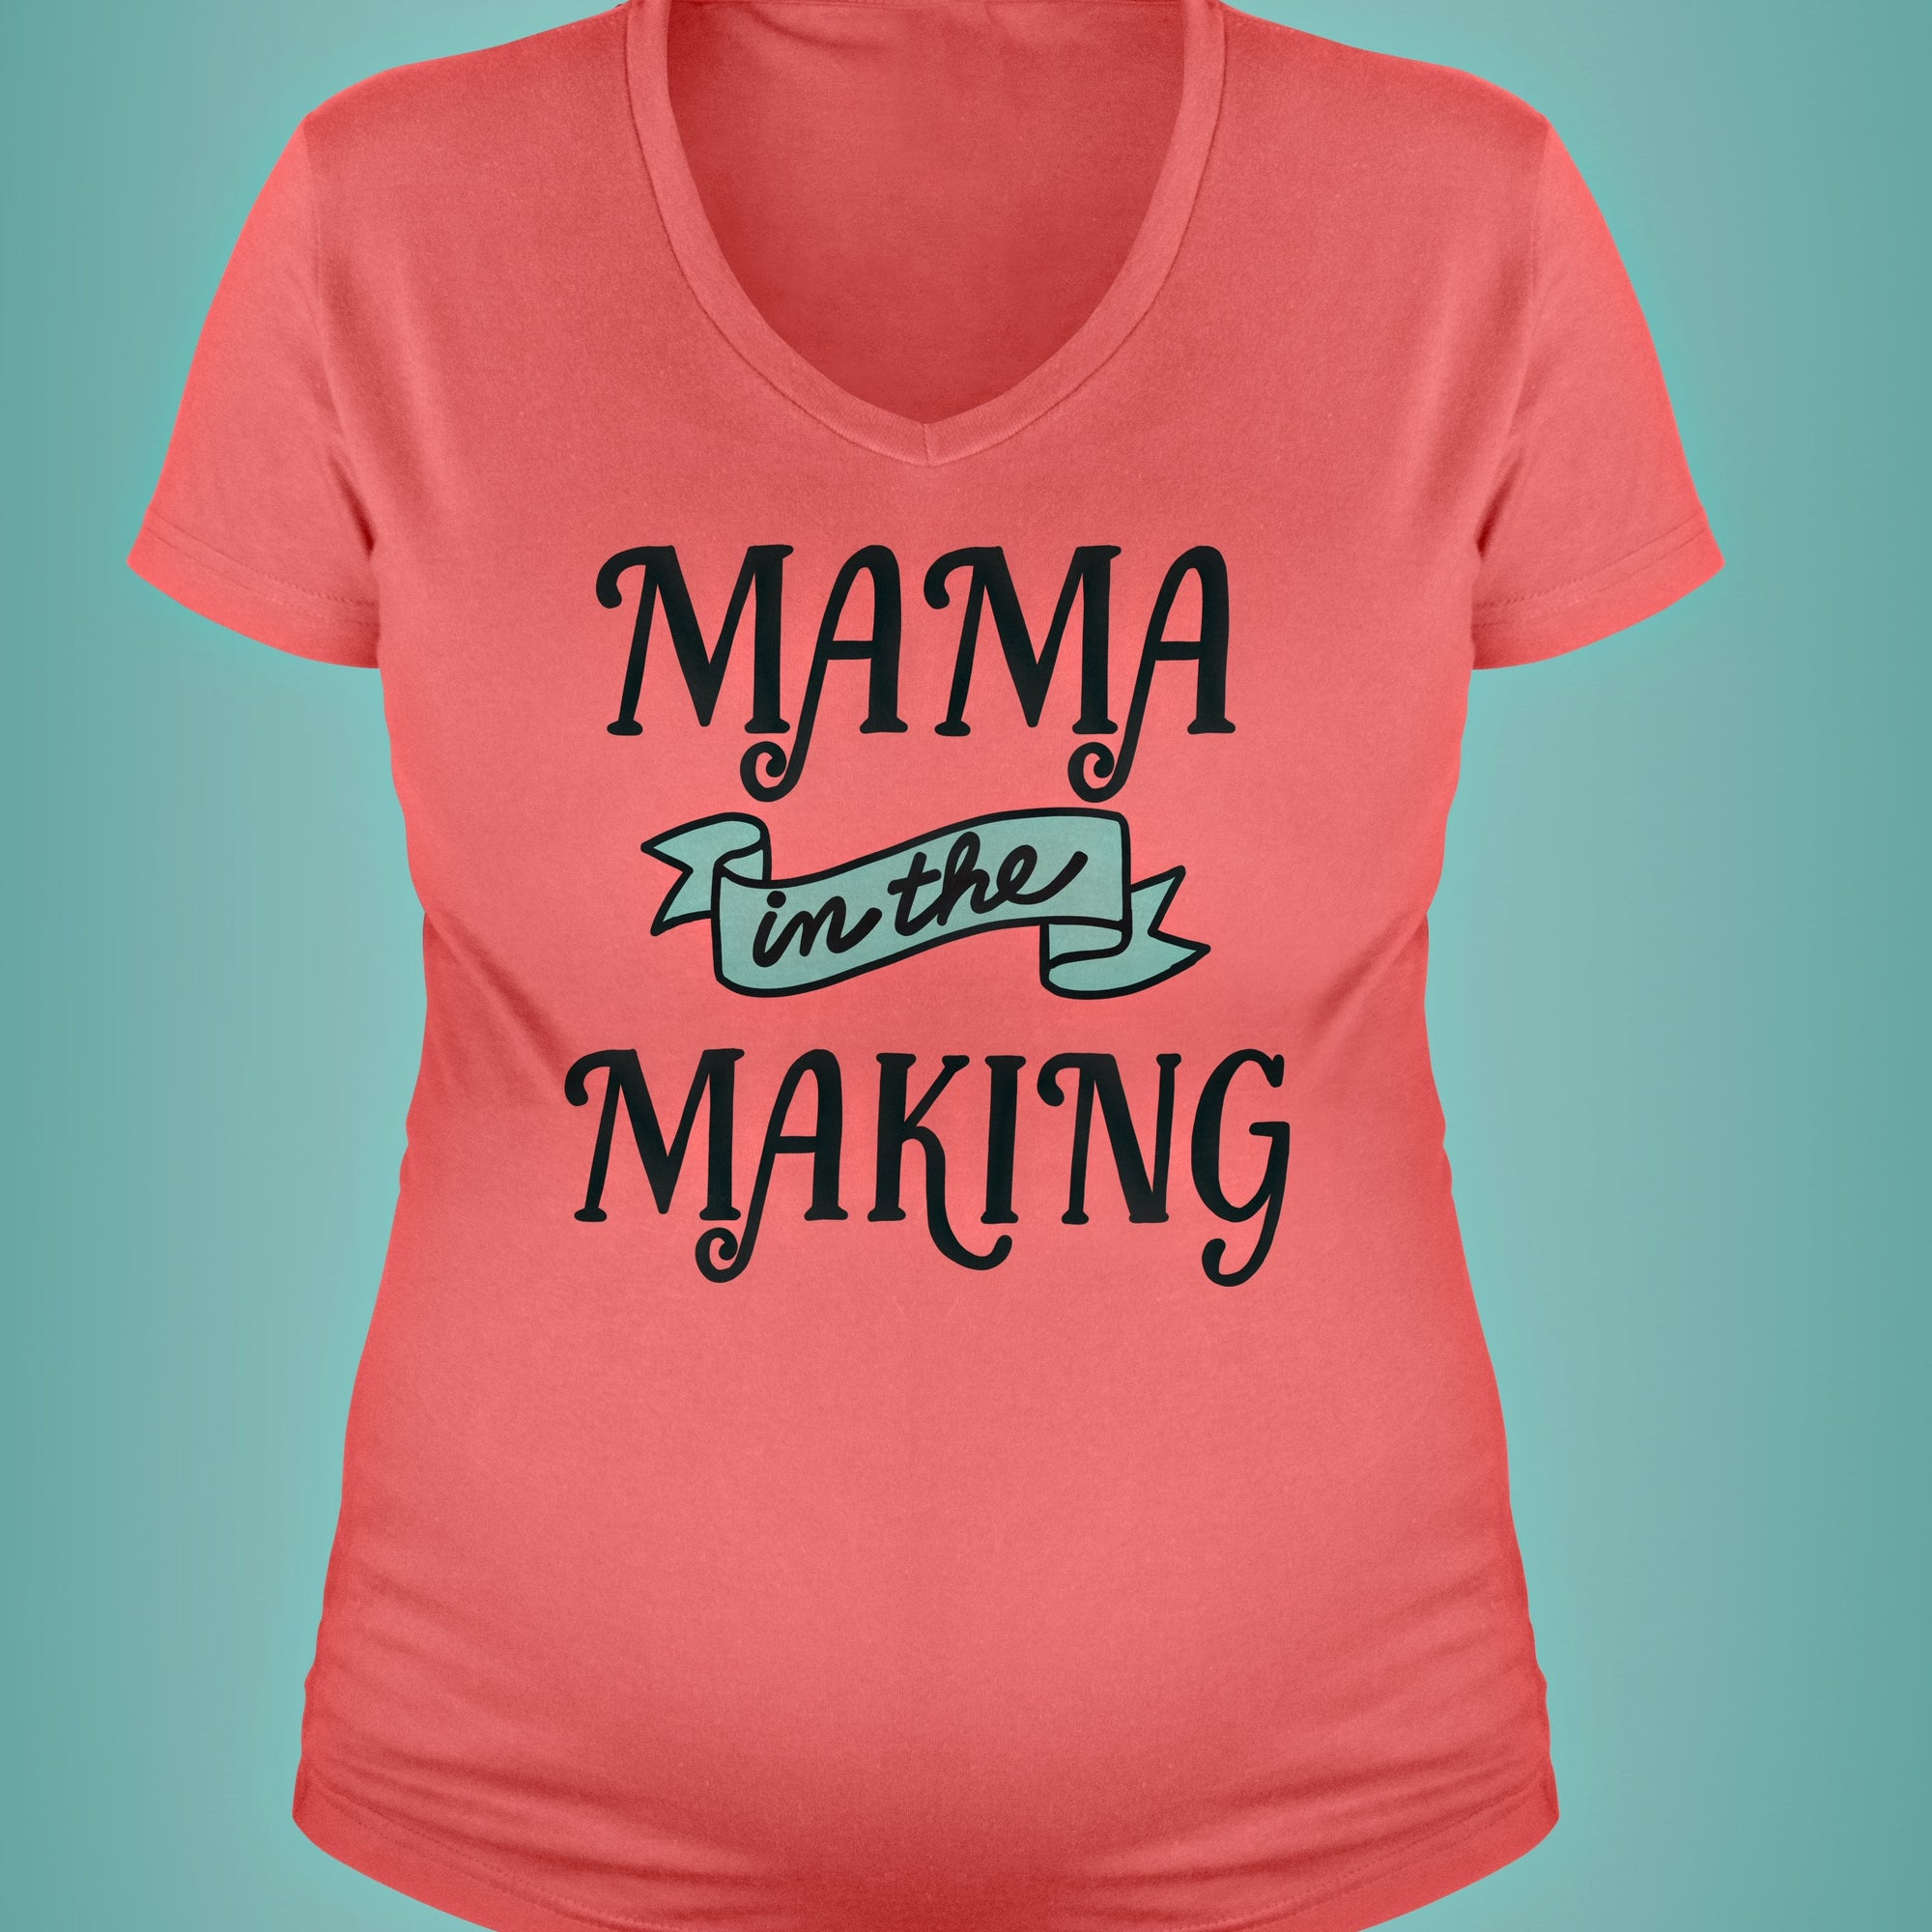 FUNNY PREGNANCY SVG, Mama in the Making Maternity Svg File, Funny Maternity Shirt Svg, Funny Pregnancy Quote Svg Files for Cricut, Baby Svg